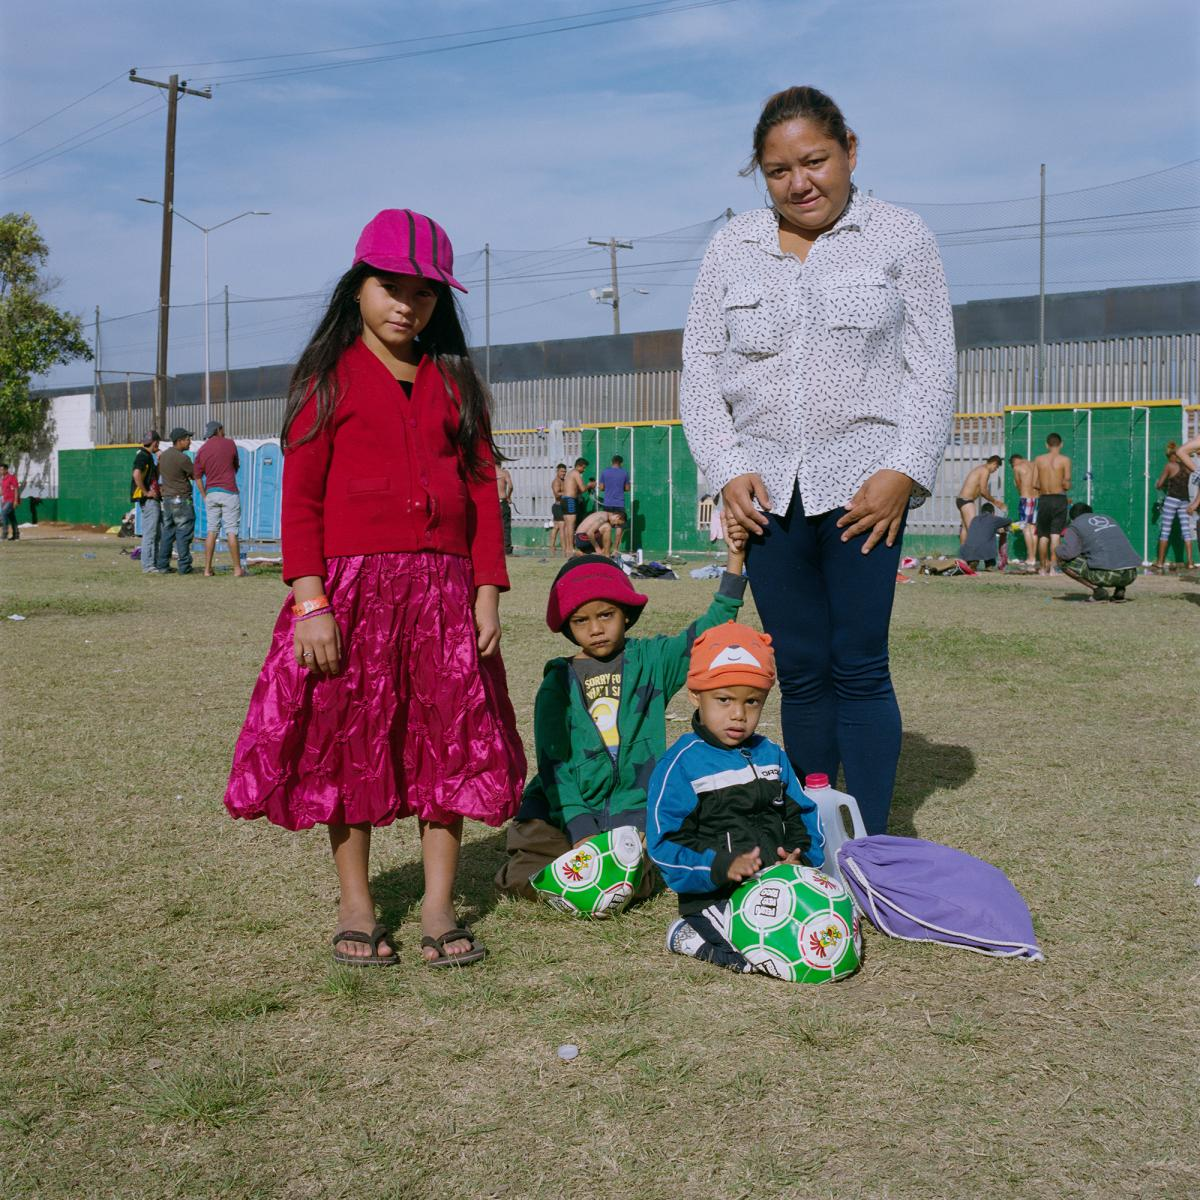 """Cynthia Carolina Soriano, 30, Kenneth Soriano, 2 (bottom right), Joseph Soriano, 5 (center), and Jennifer Soriano, 7 (left), from Villa Nueva Cortes, Honduras. """"The maltreatment I was subjected to, as other women there in Honduras, was why I decided to le"""